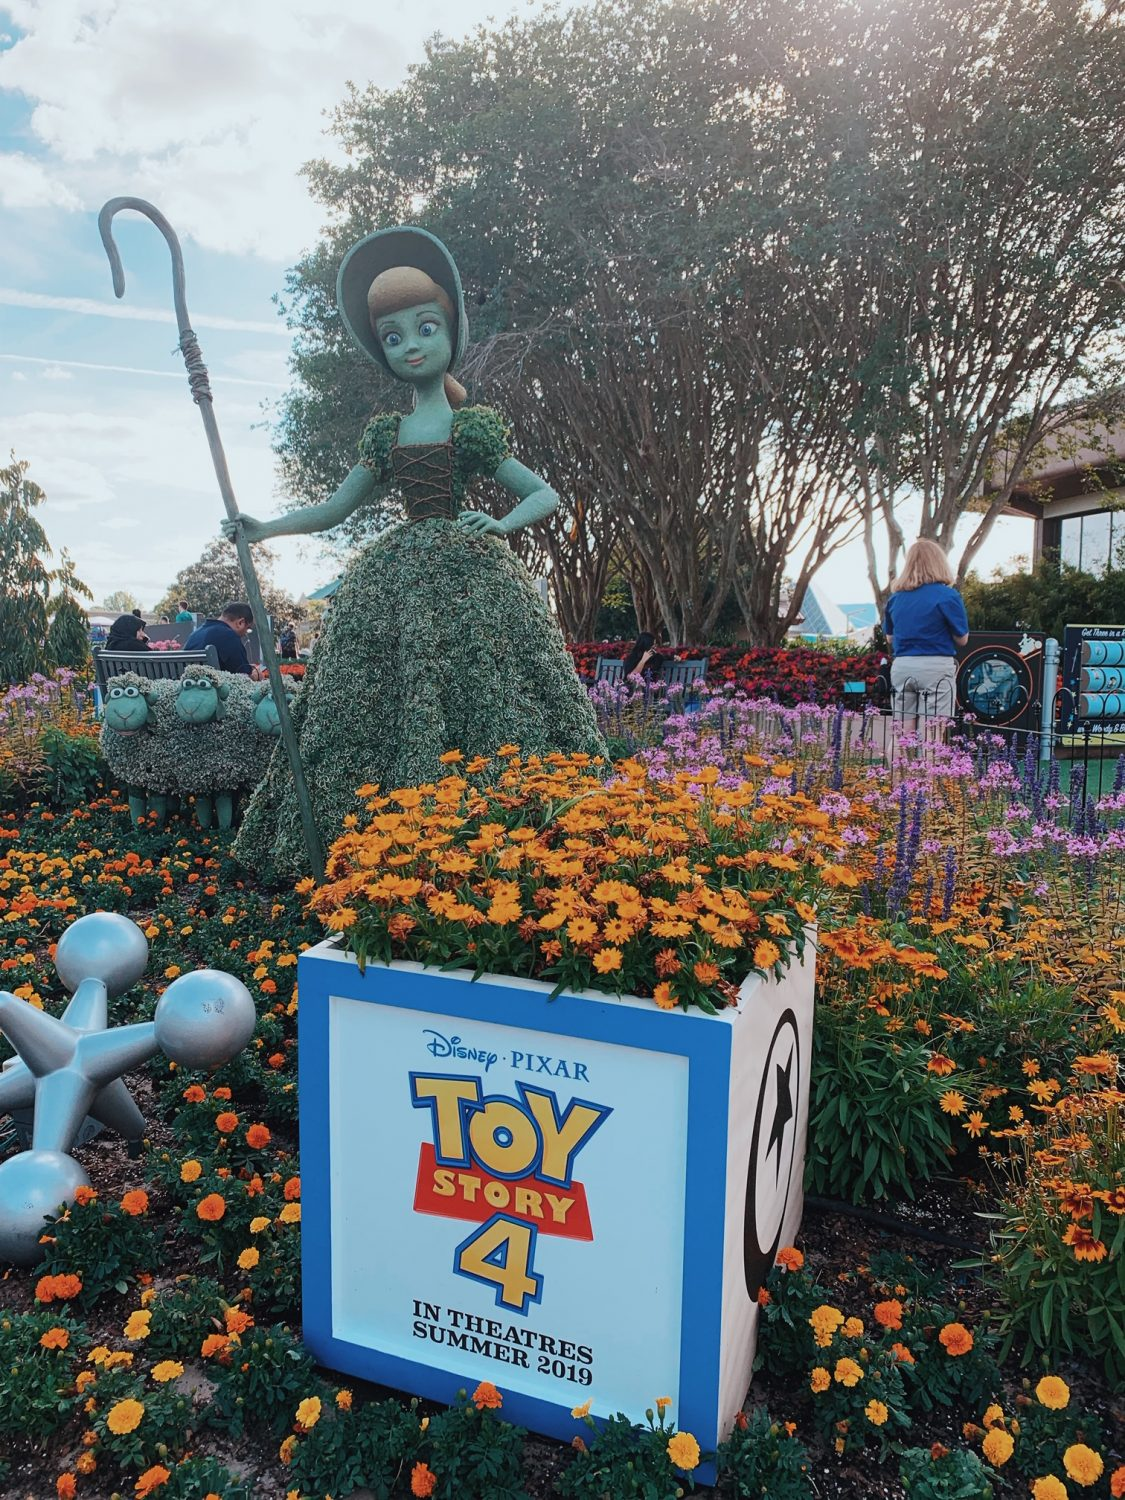 Epcot International Flower & Garden Festival Toy Story 4Topiary